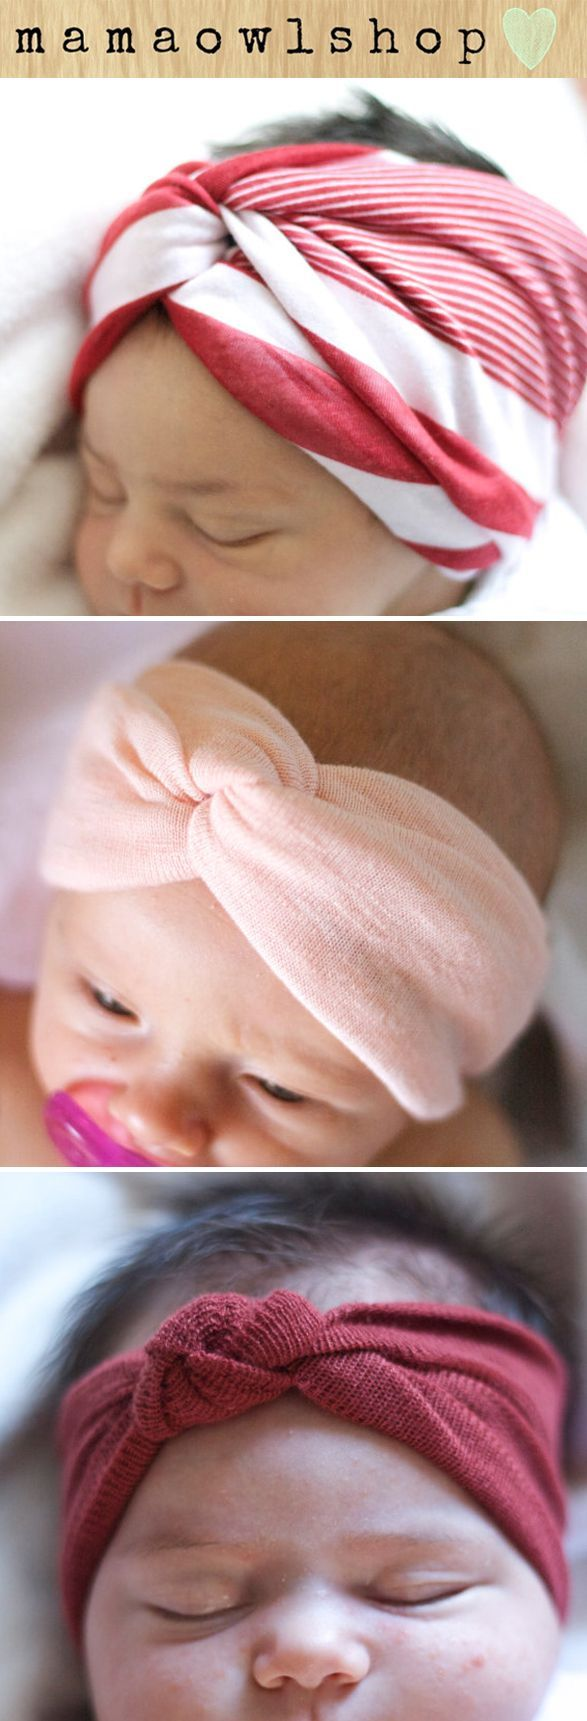 Baby Head Wraps..no instructions. I'm sure I can figure it out.: Baby Girl Turban, Diy Baby Turban, Diy Baby Head Wrap, Diy Baby Headband, Cute Baby Girl, Diy Baby Head Band, Baby Girl Head Band